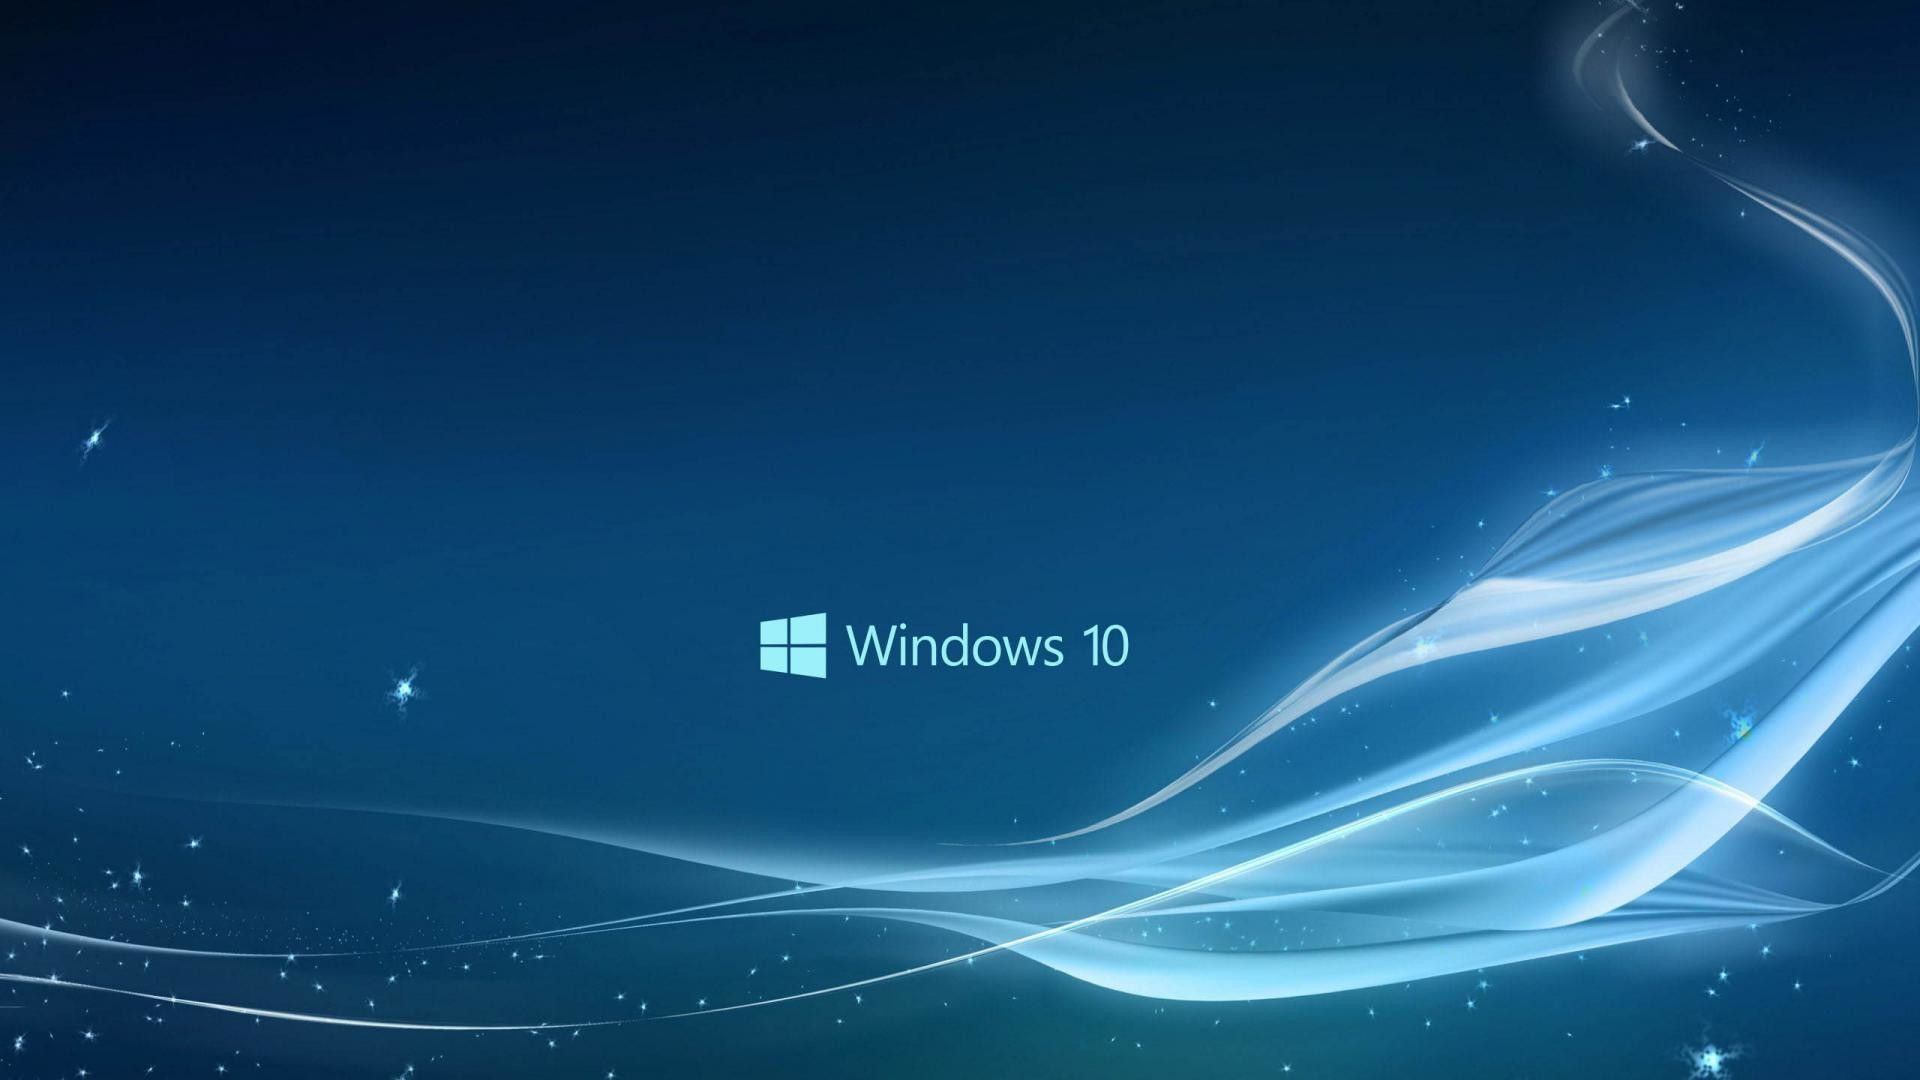 Scarica sfondi windows 10